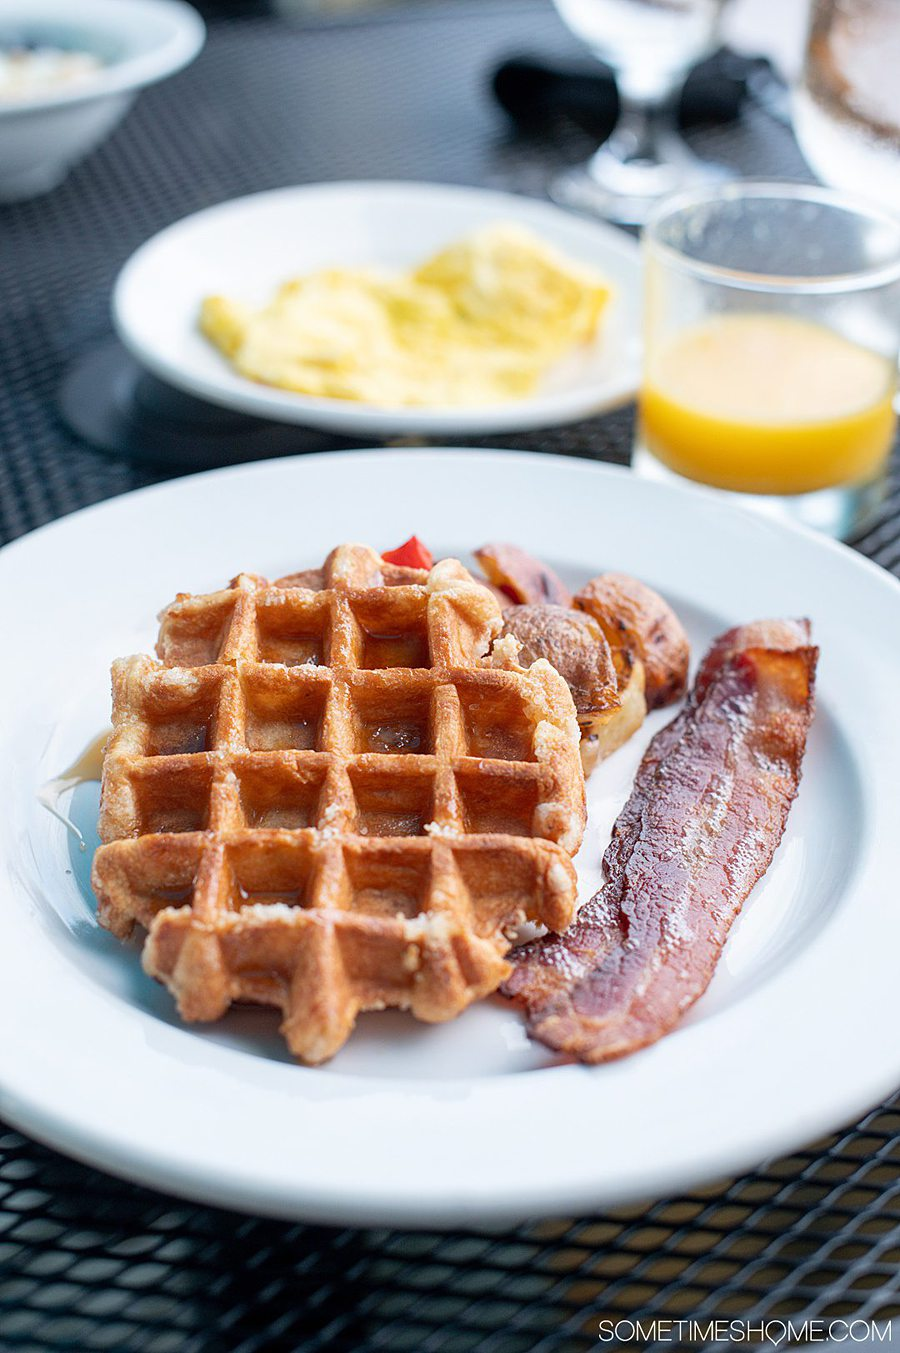 A plate of waffles and bacon, with potatoes, eggs and orange juice, in the background in the Outer Banks at Cafe Pamlico restaurant.